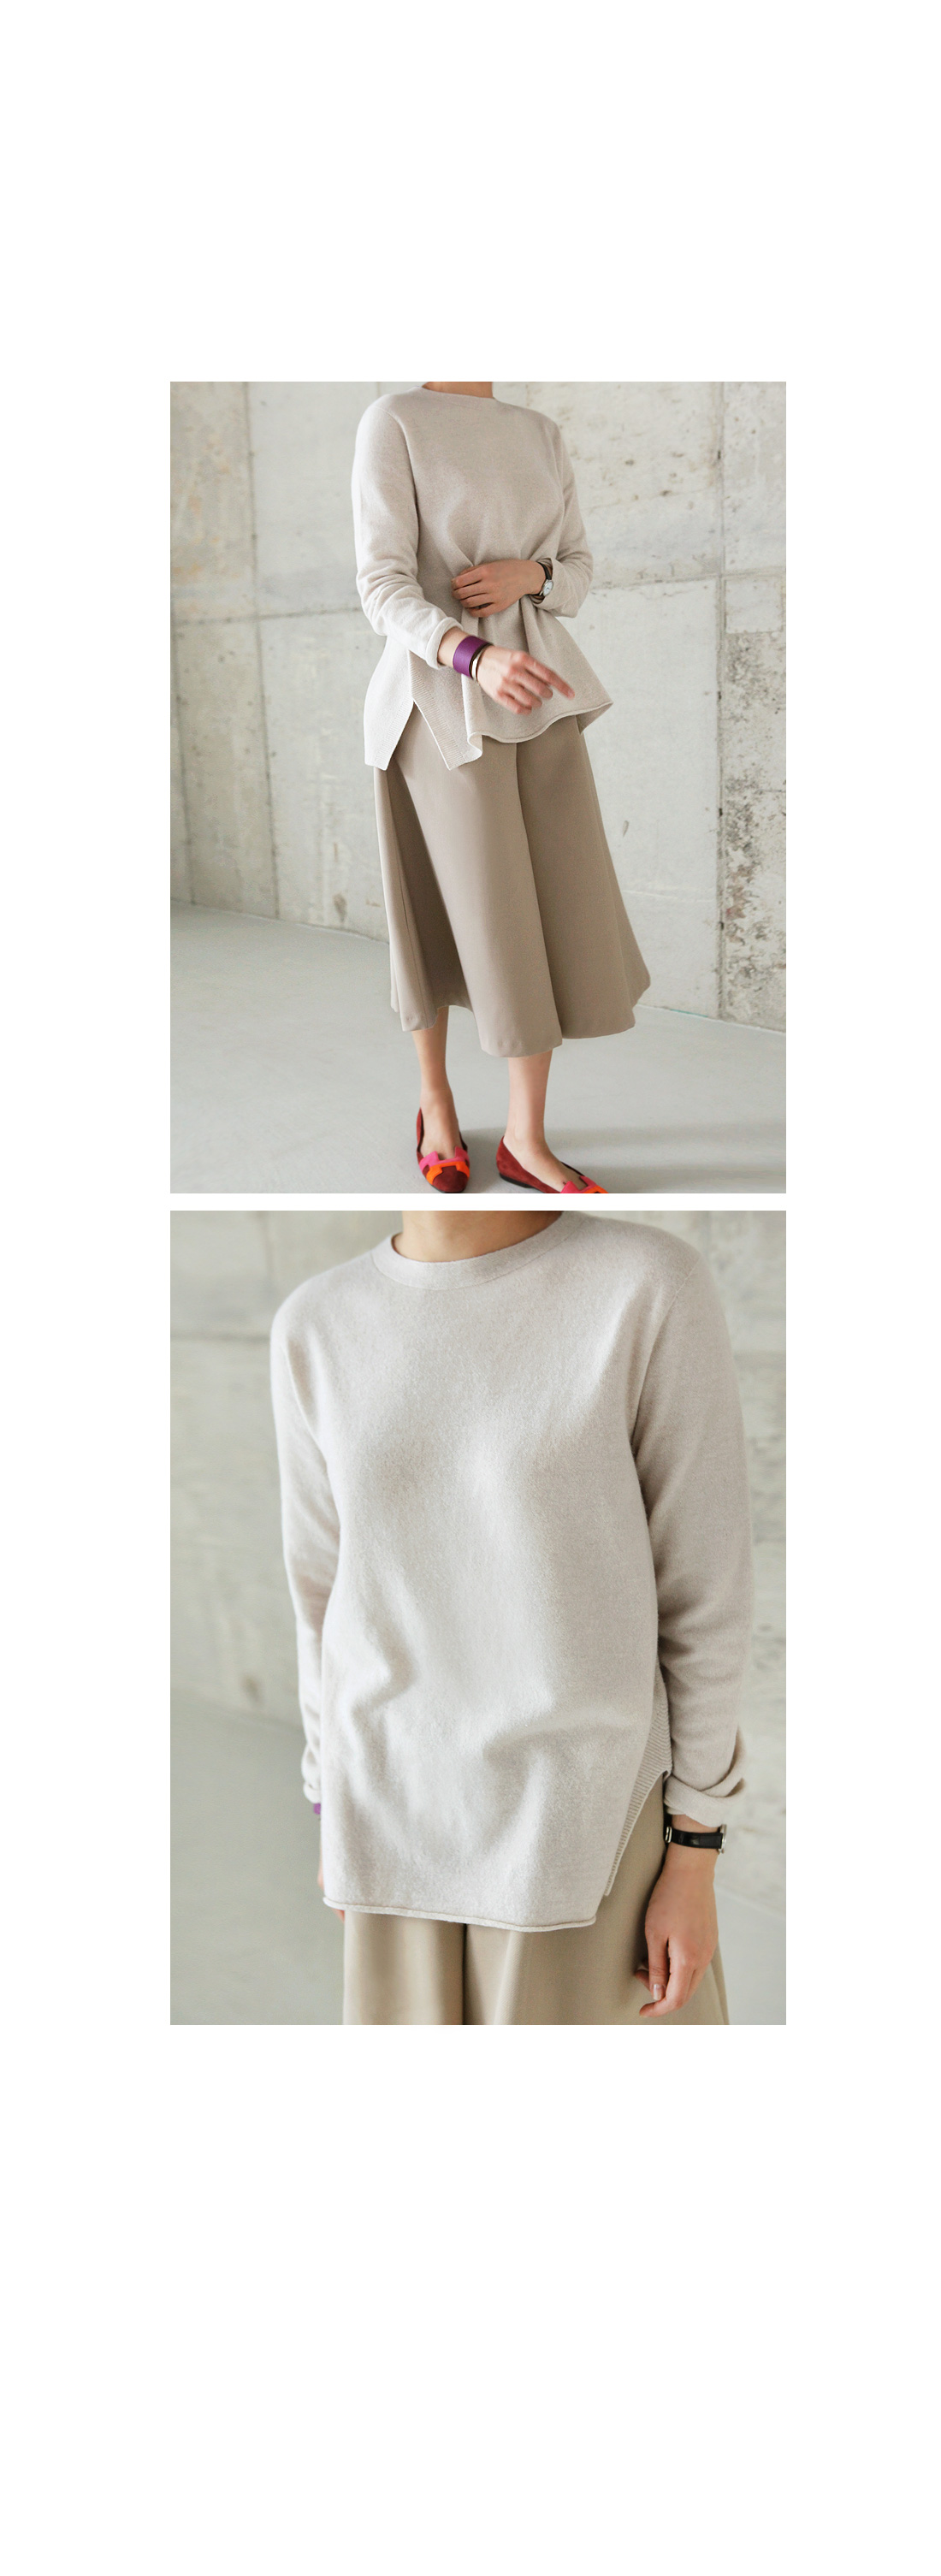 Jewel Neck Long Sleeve Knit Top|